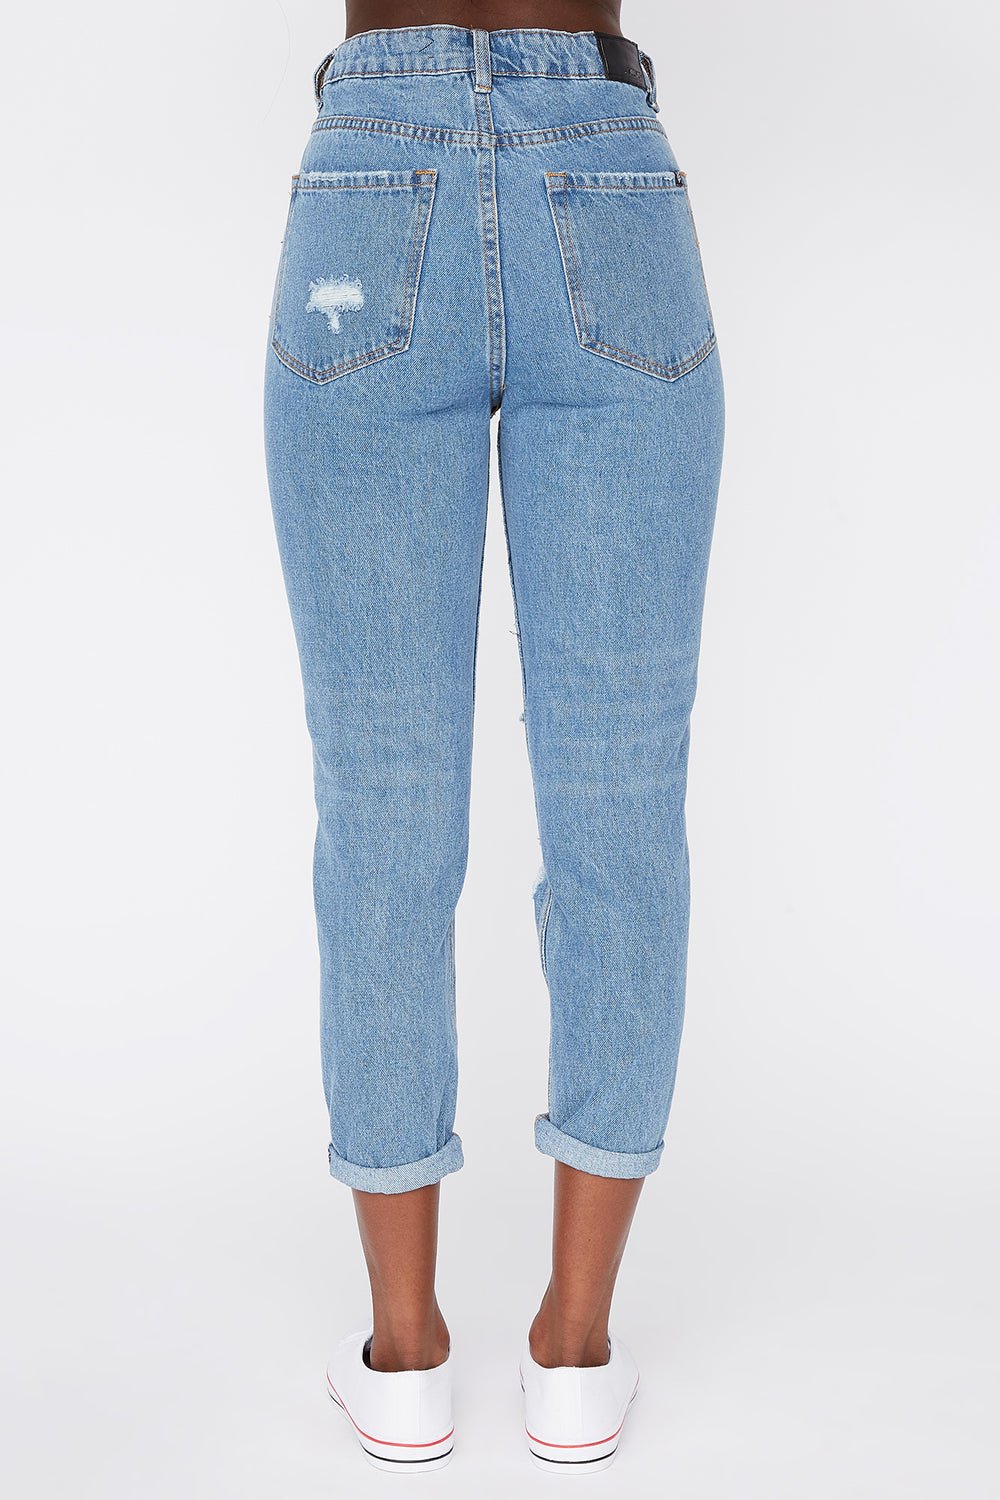 Zoo York Womens Cropped Mom Jeans Medium Blue